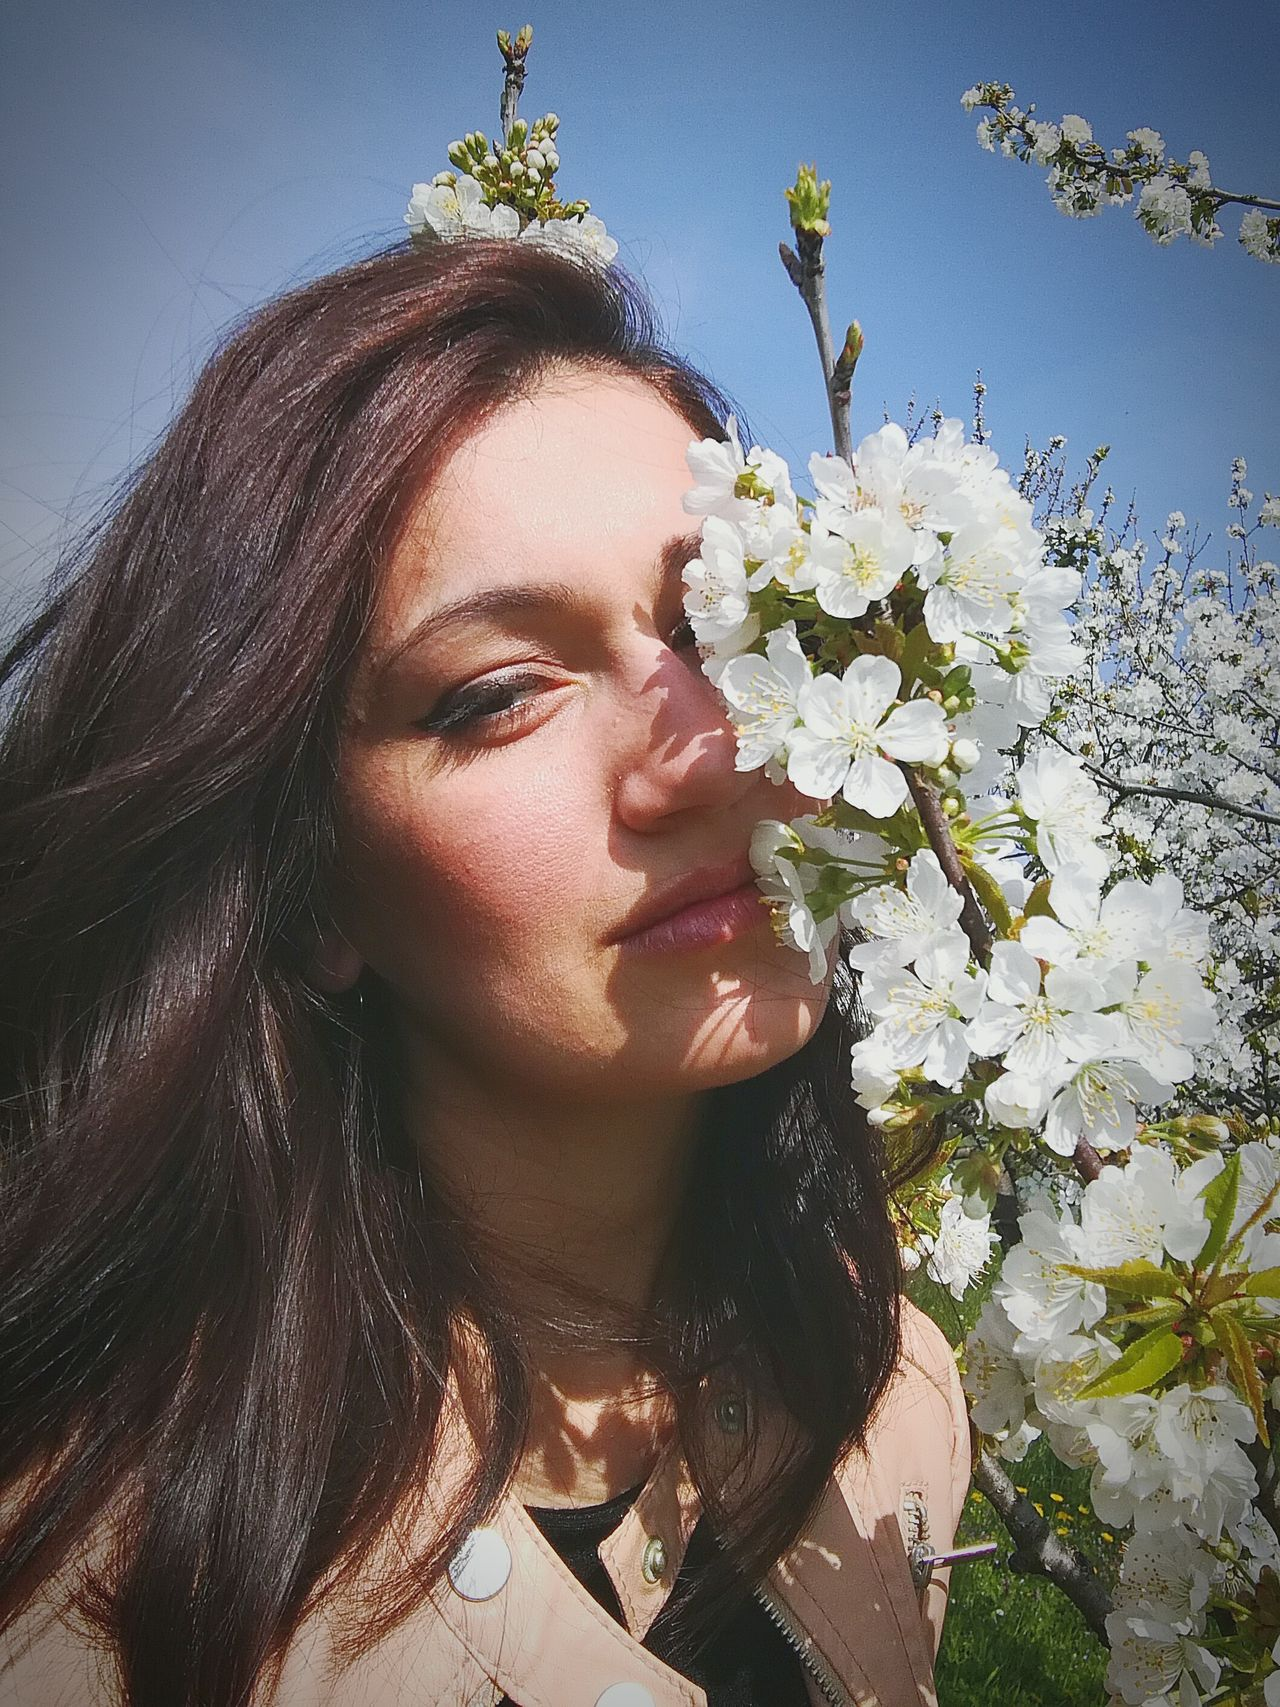 Flower Beauty Portrait Beautiful Woman Sunlight Adult Adults Only Young Women Wreath Young Adult Sky Nature Pretty Primavera Italy Lifestyles One Woman Only One Young Woman Only People One Person Day Dreaming Close-up Human Body Part Italiangirl Bulgaria First Eyeem Photo